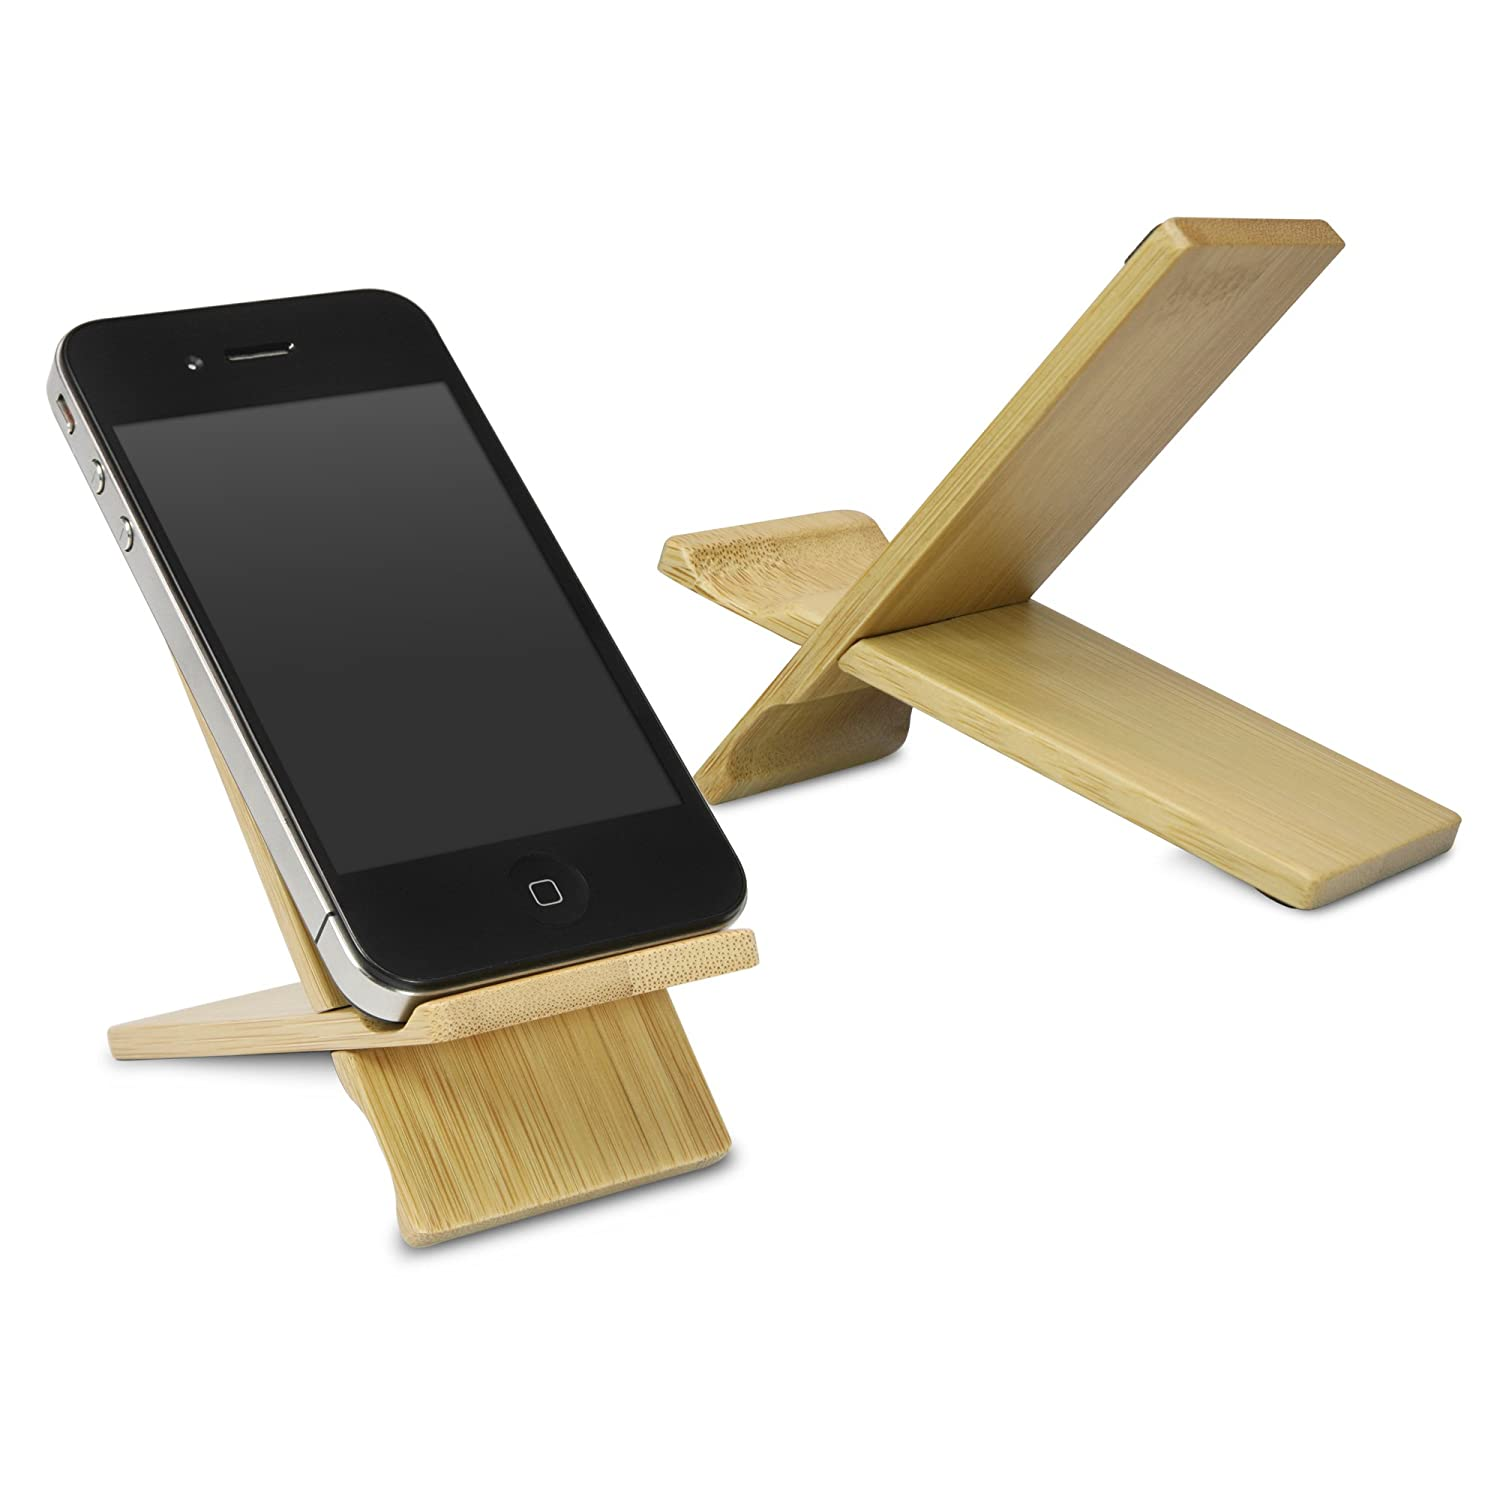 BoxWave HTC Hero Bamboo Natural Panel Stand, Premium Bamboo, Real Wood Stand for your HTC Hero - Small htc hero cdma